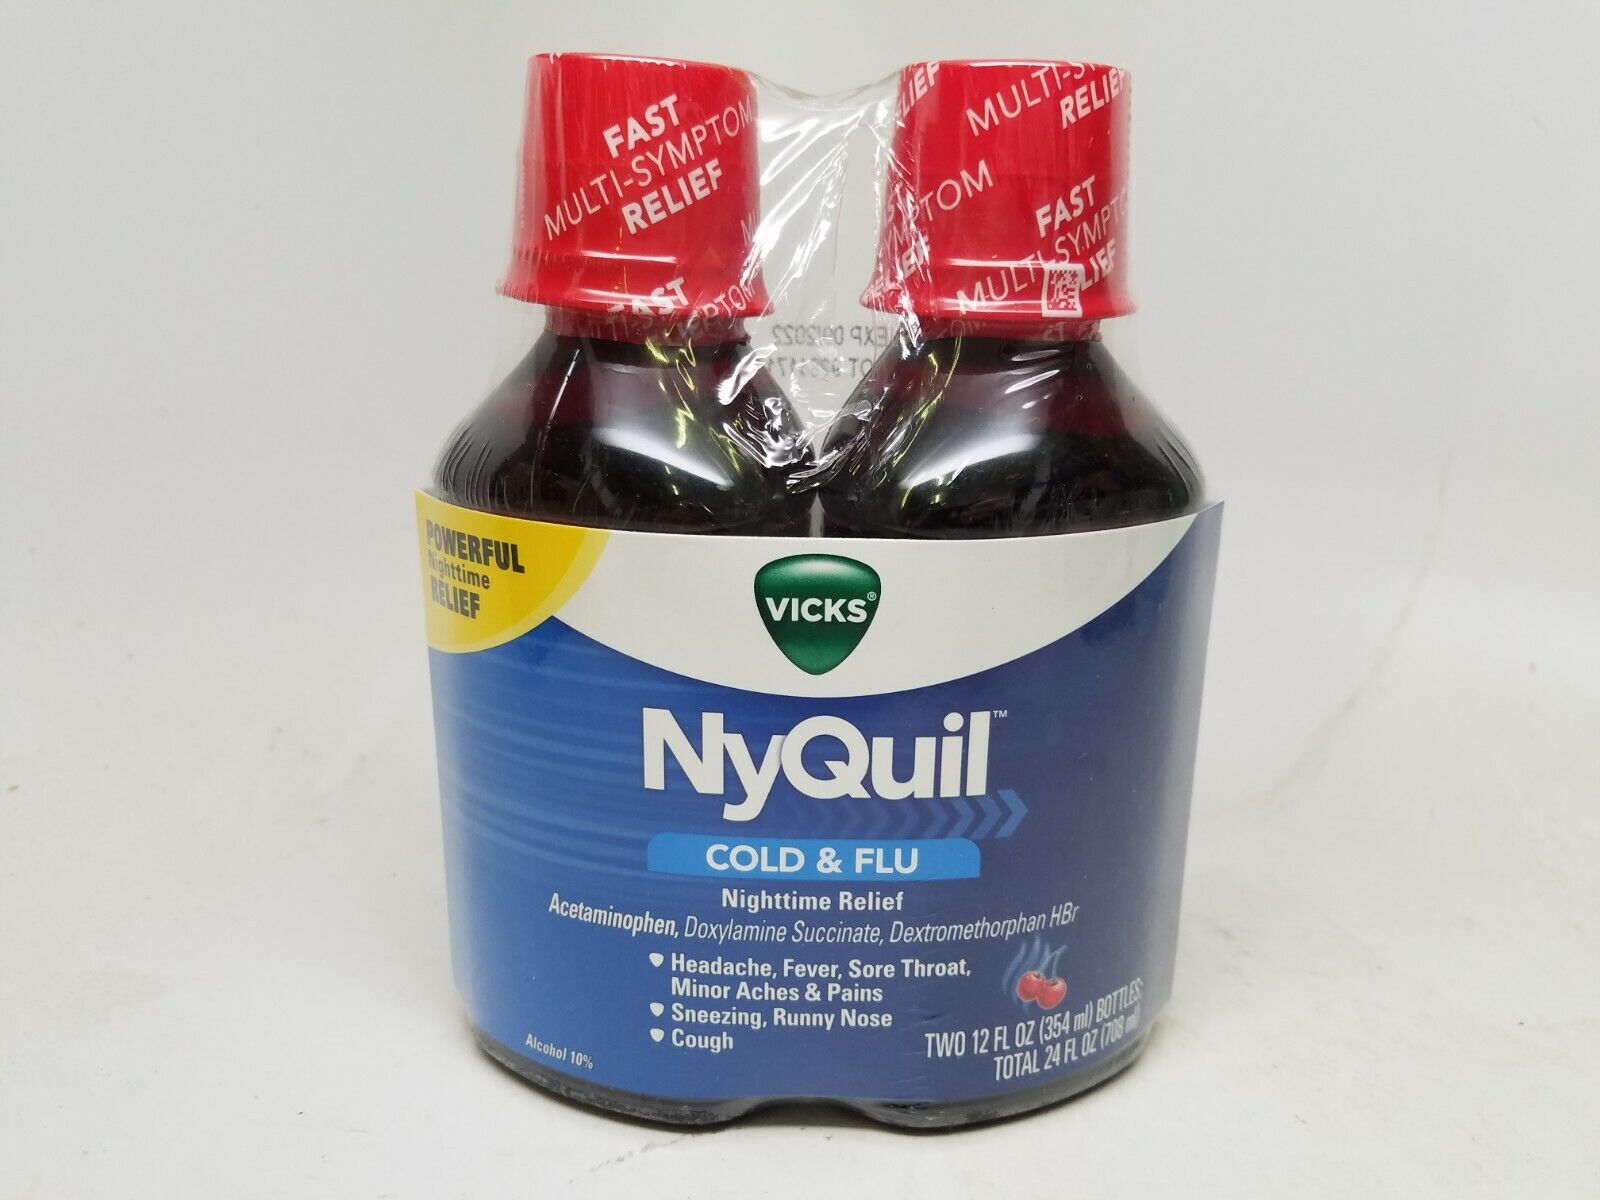 Vicks NyQuil Cough Cold and Flu Nighttime Relief, Cherry Fla